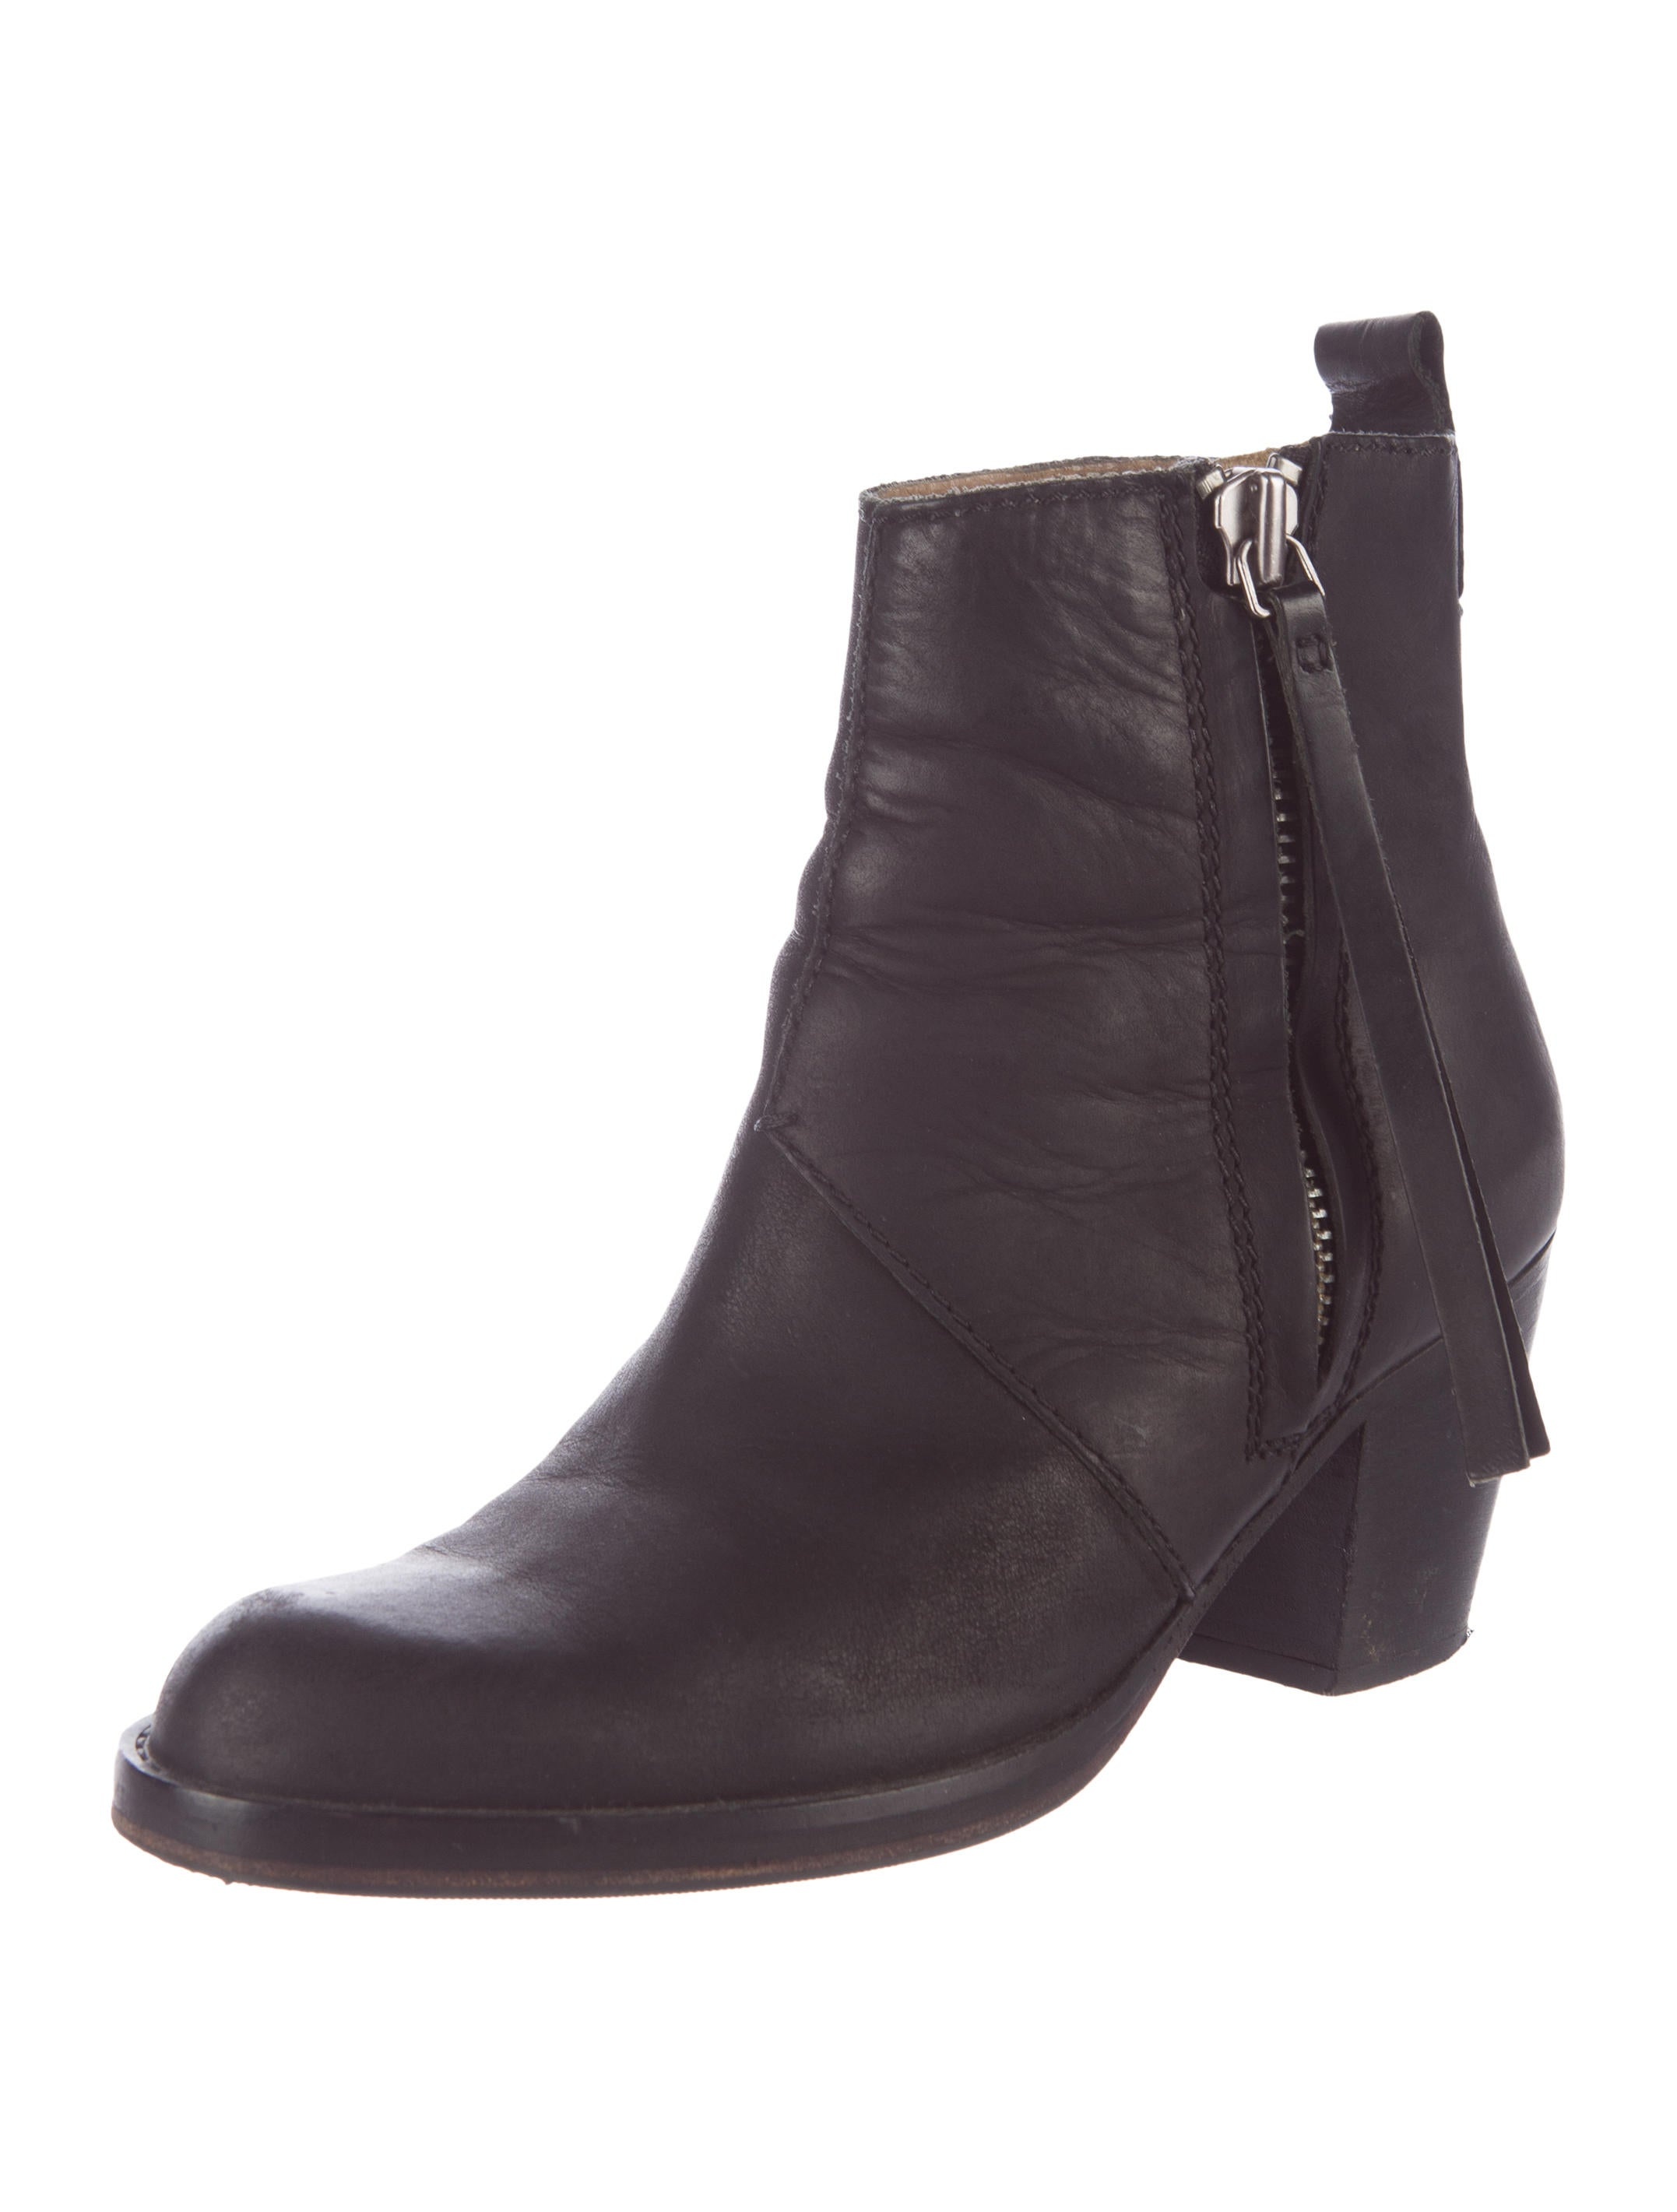 Acne Leather Pistol Ankle Boots - Shoes - ACN29088 | The RealReal